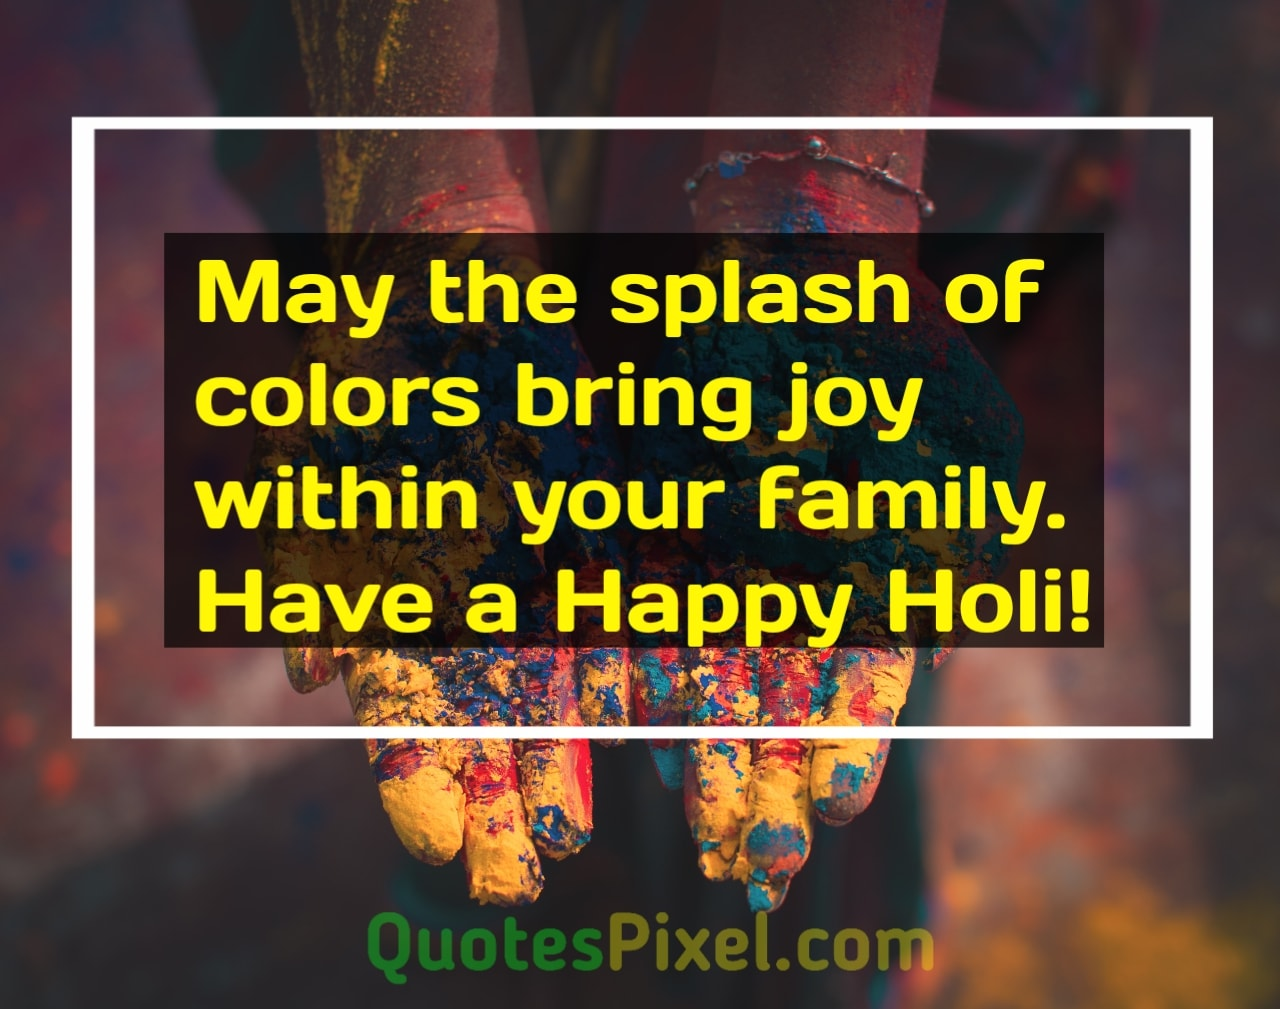 May the splash of colors bring joy within your family.  Have a Happy Holi!